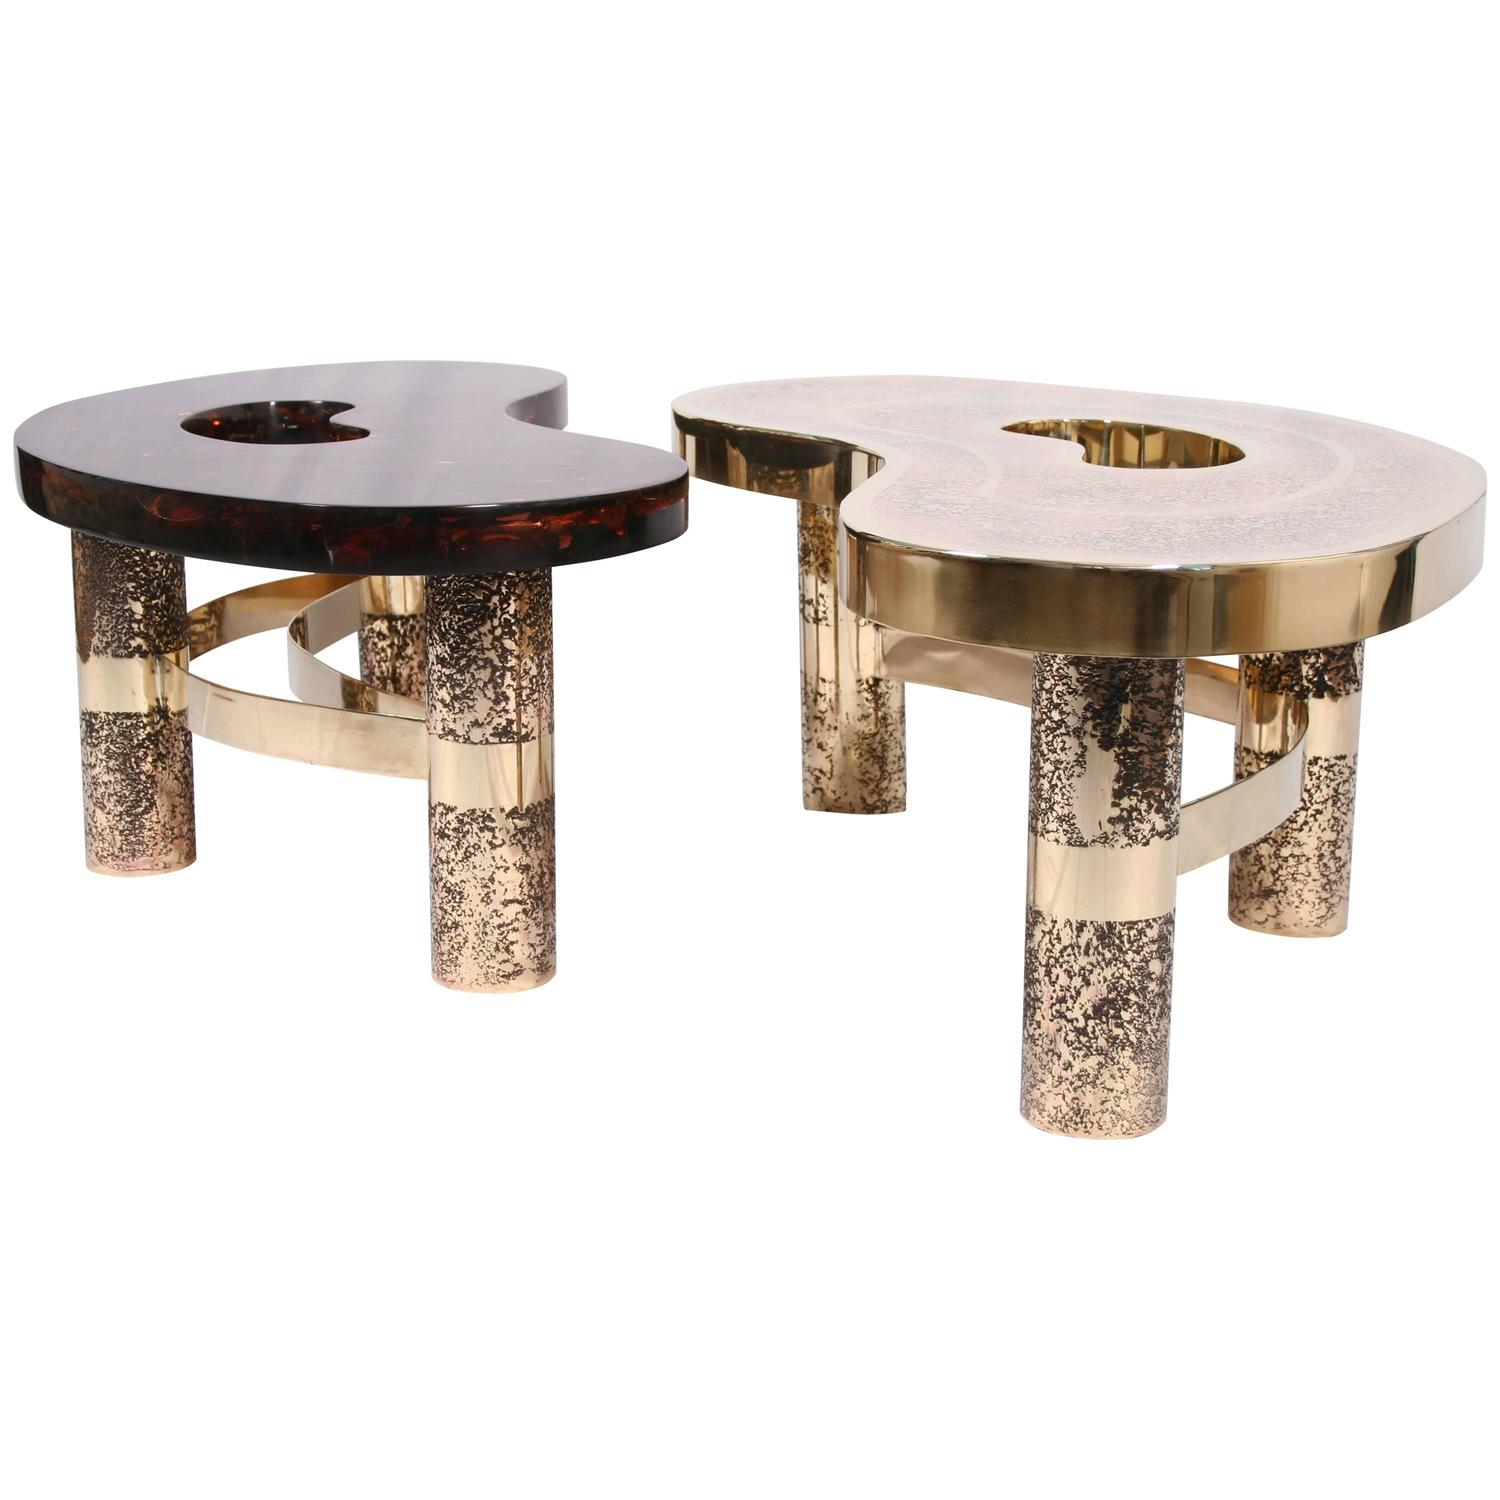 Coffee Table Beann Etched Brass And Fractal Resin Designed By Arriau For Sale At 1stdibs